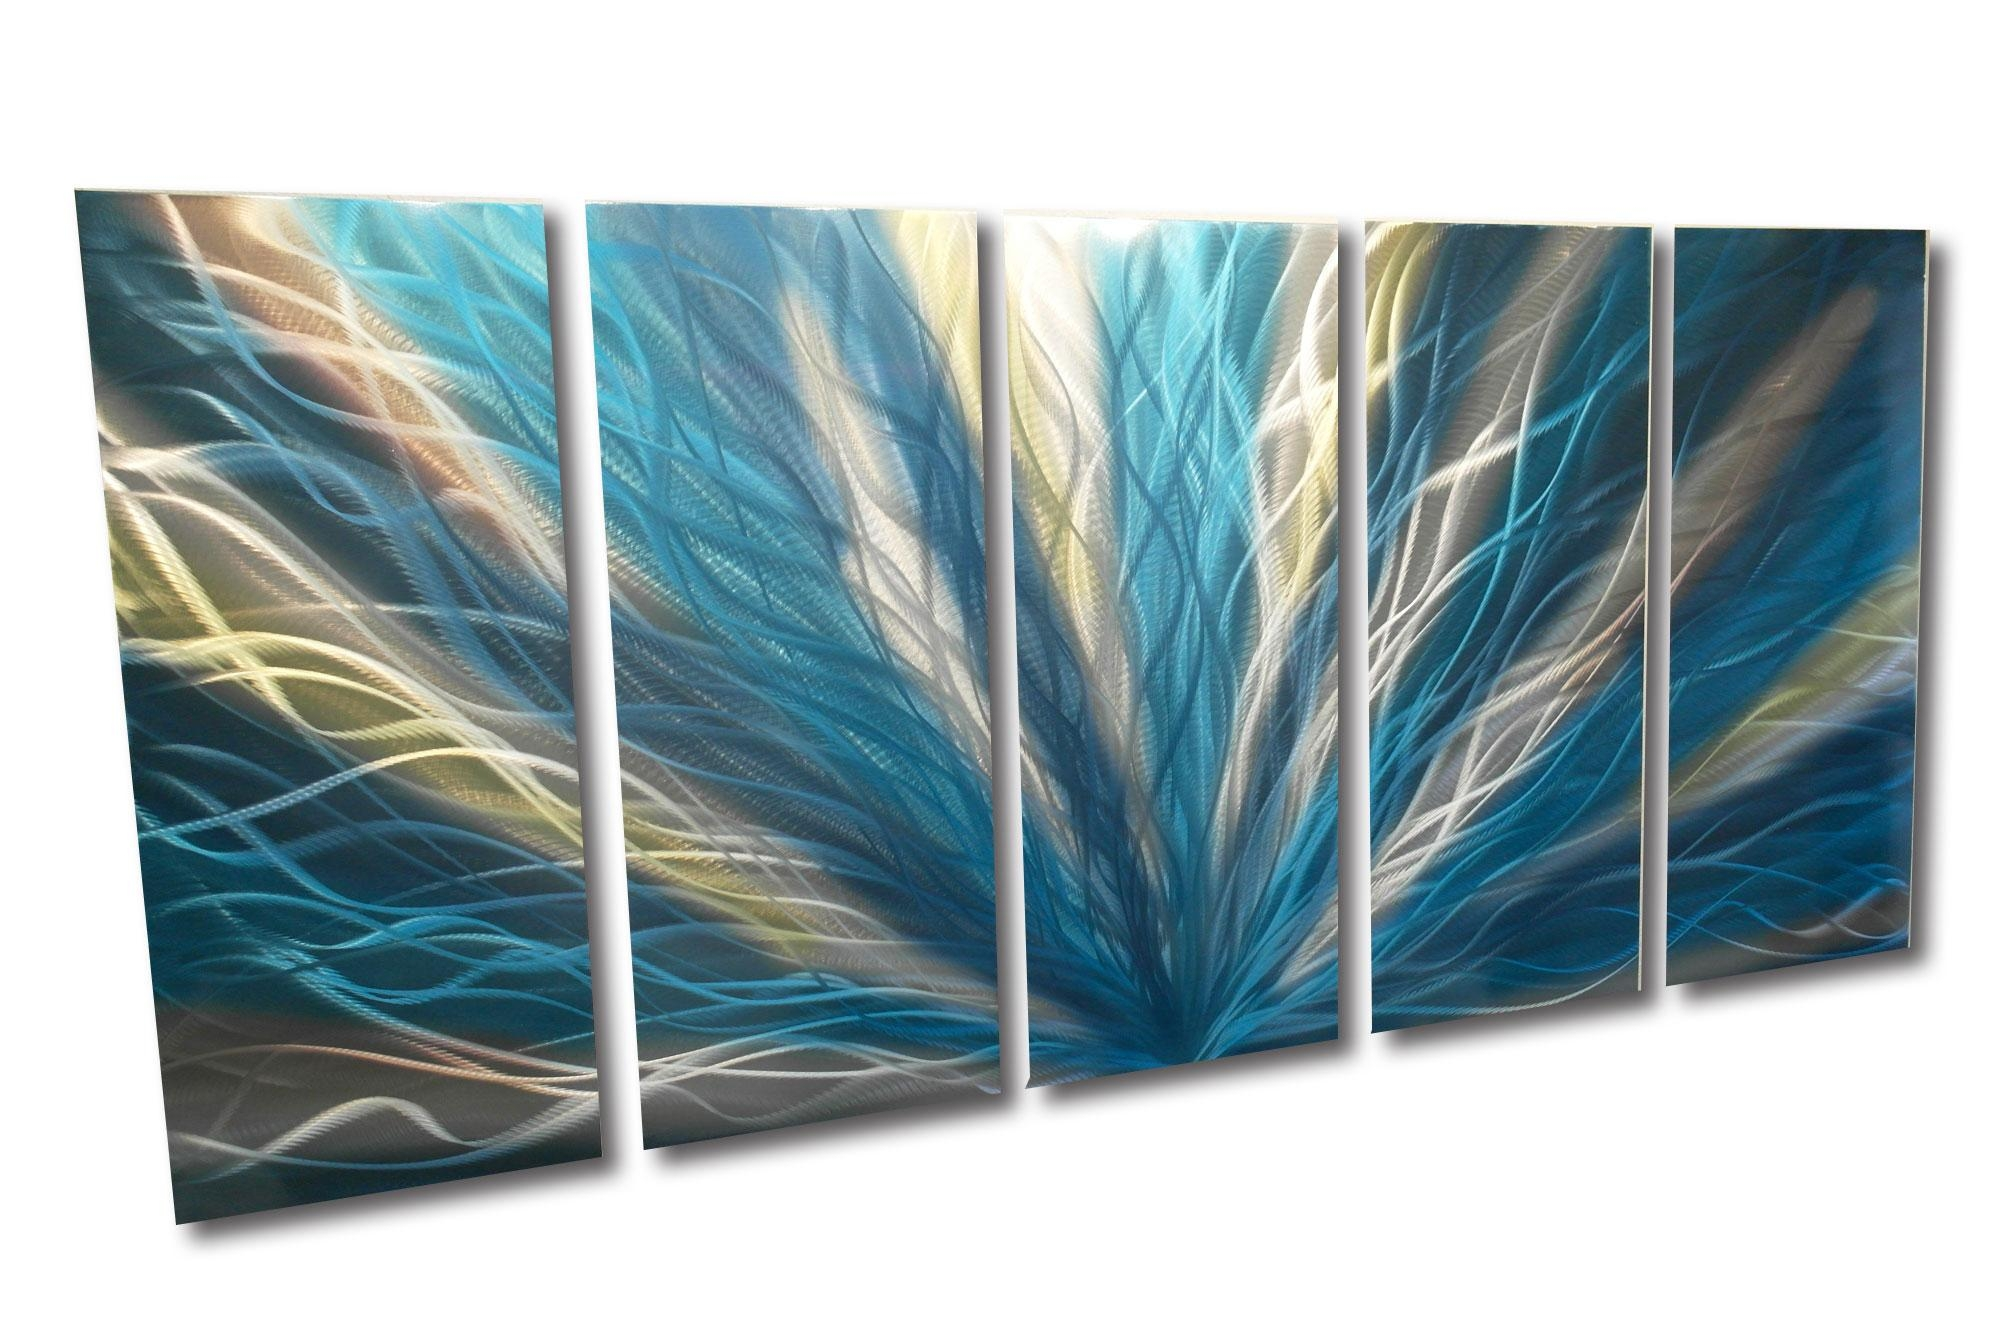 Radiance Teal 36X79 – Metal Wall Art Abstract Sculpture Modern Pertaining To Turquoise And Brown Wall Art (View 6 of 20)